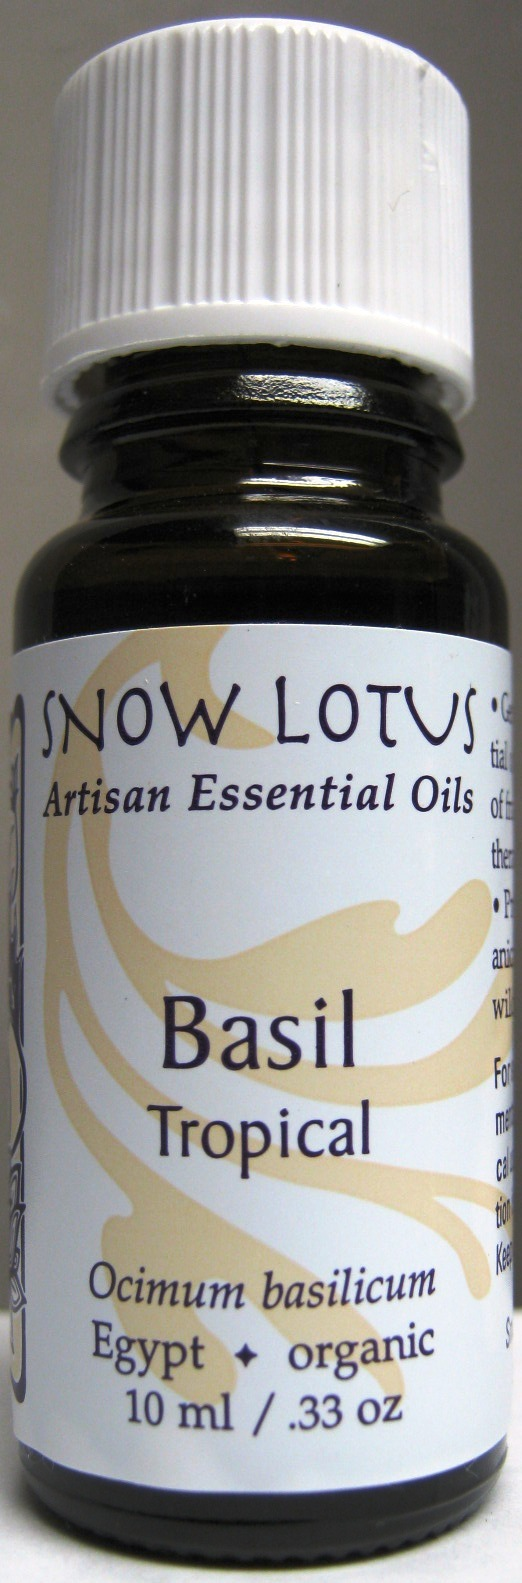 Basil (tropical) Essential Oil